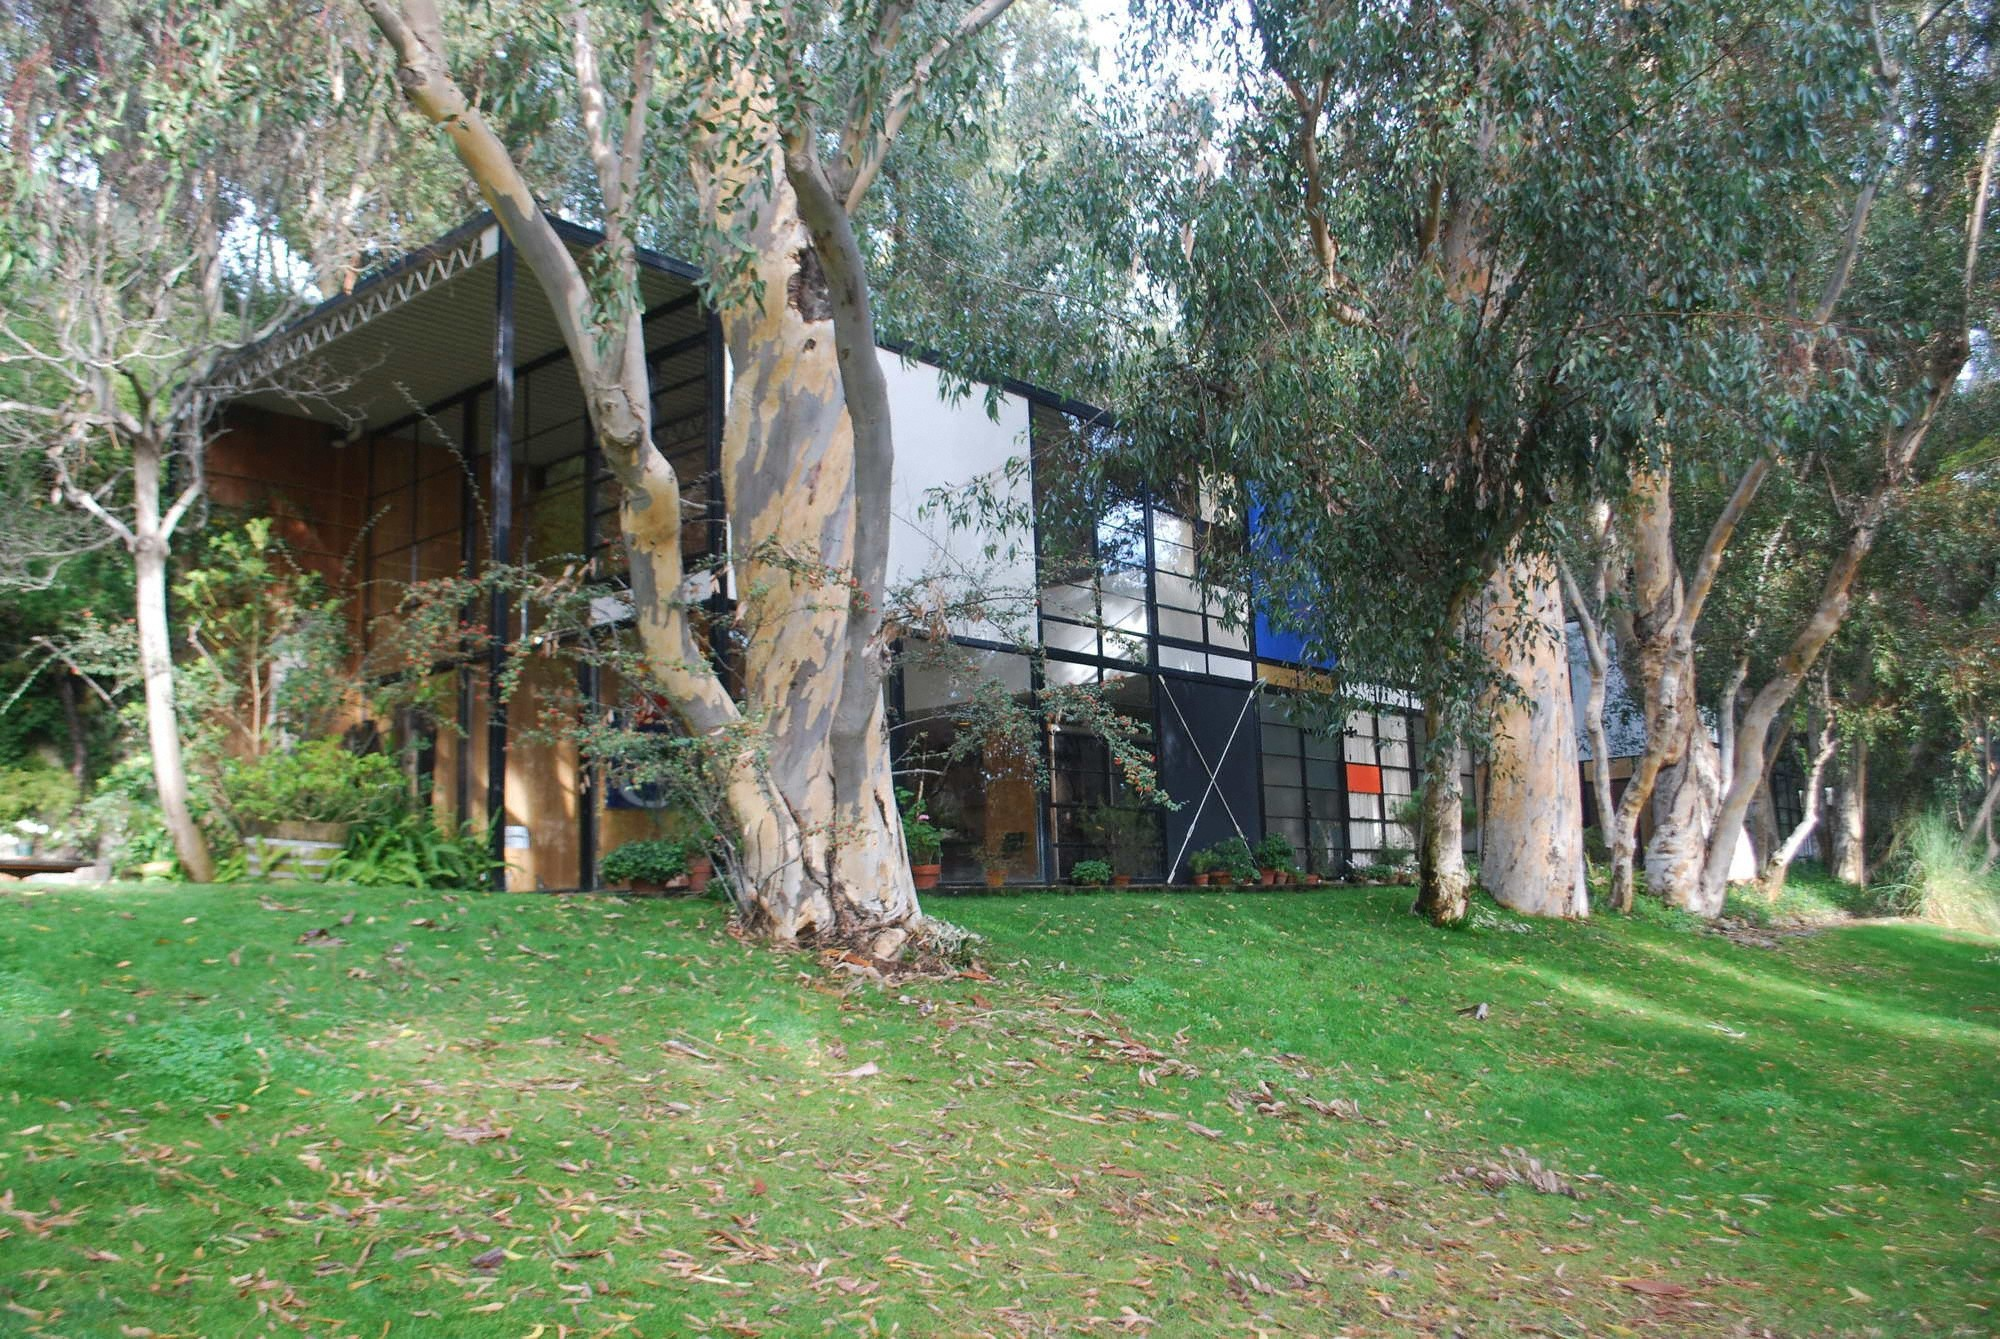 The Indicator: Pilgrimage, Experiencing the Eames House